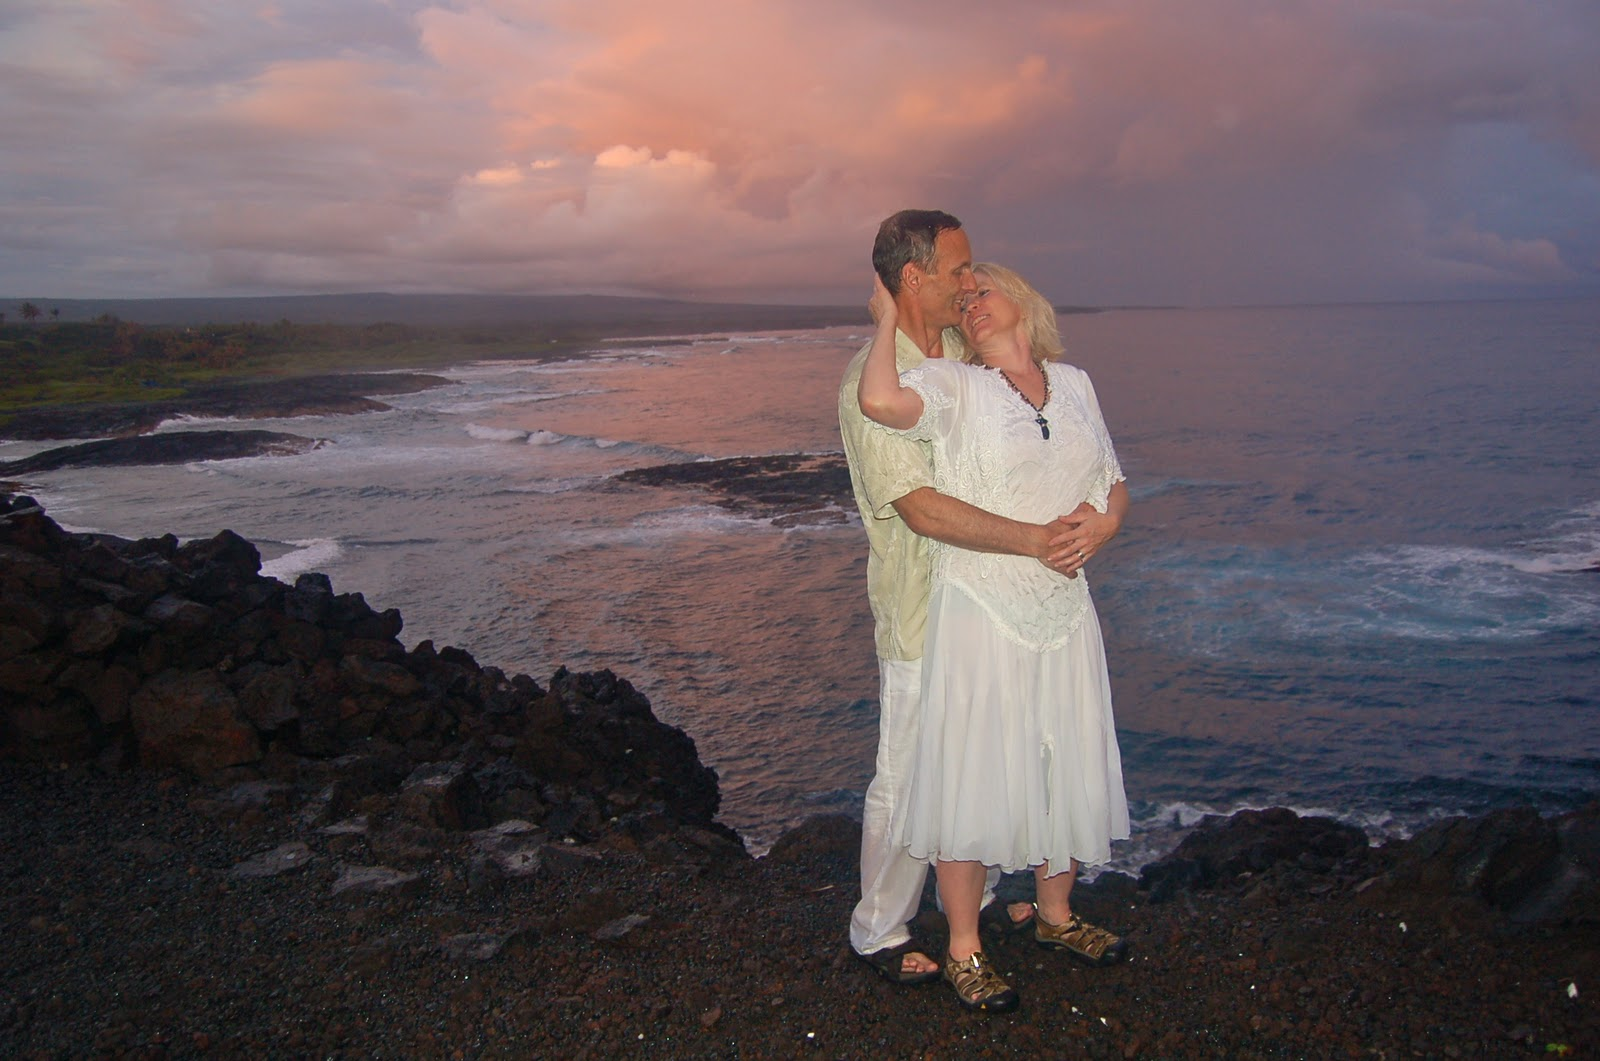 The Sacred Heiau At Secluded Beach Had Intrigued Them So Near Sunset Next Day We A Photo Shoot There Was Rainbow And Glorious